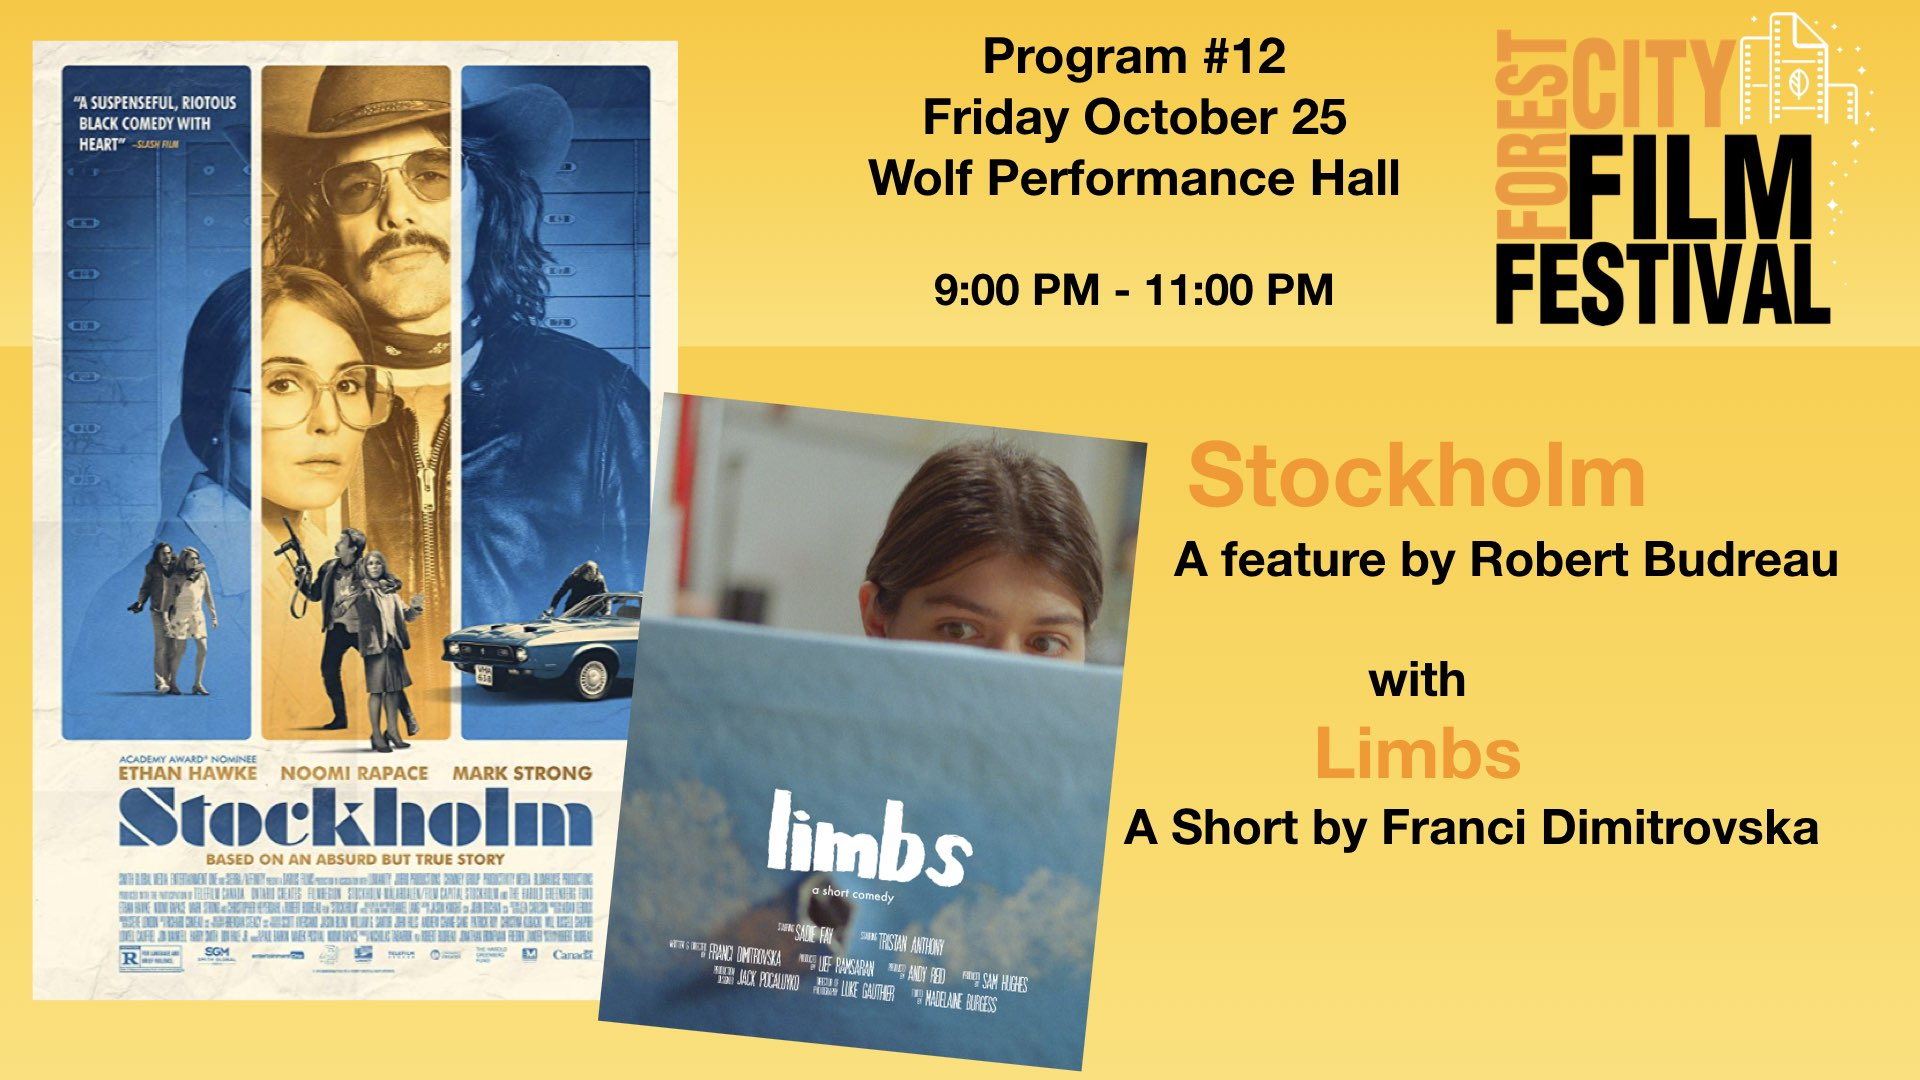 FCFF 2019 - Friday Night at Wolf Program #12 - Stockholm & Limbs